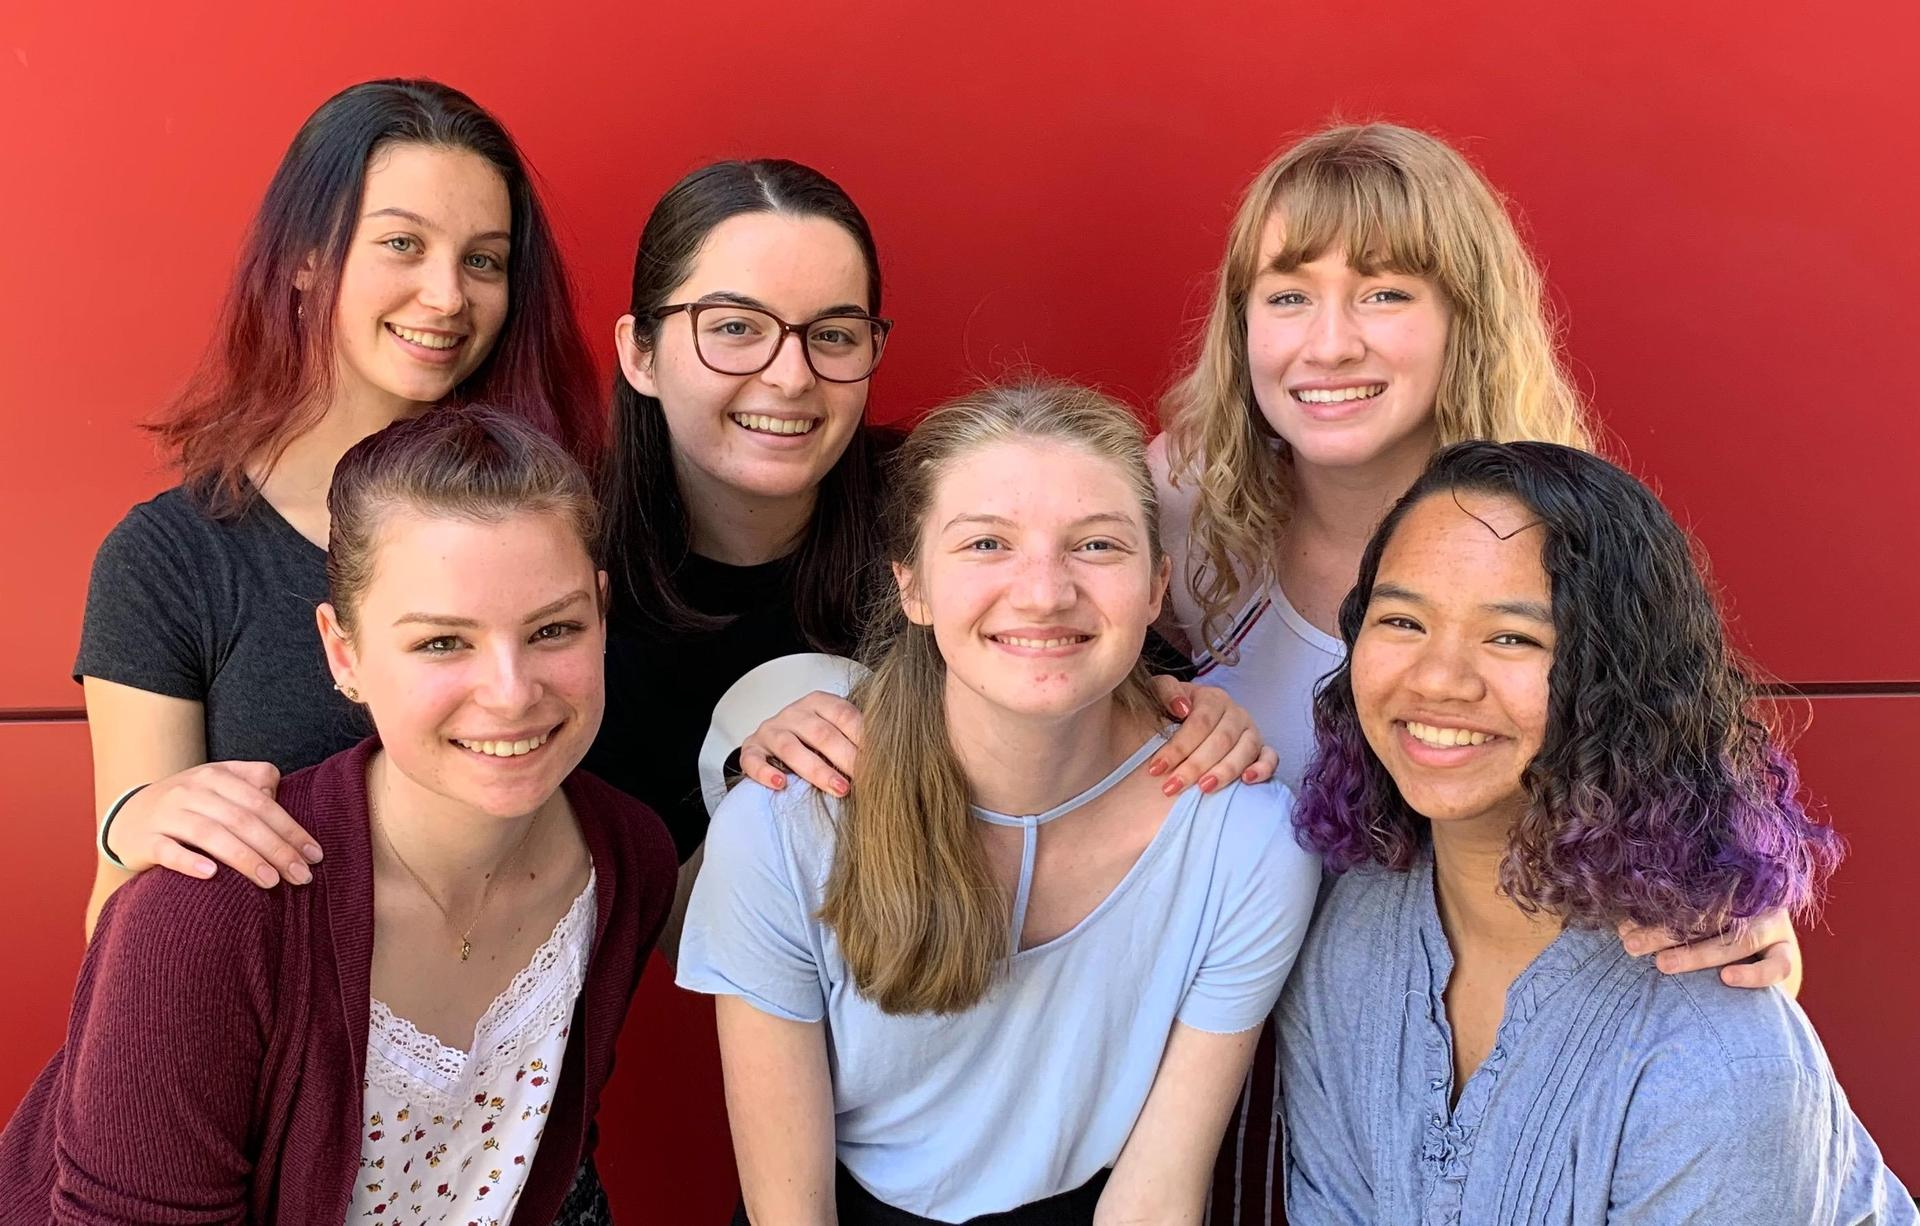 2019 / 2020 Thespian Officers: Back Row (L-R) Nicole Benton (Festival Coordinator),Katie Hedman (President), Nico Xepoleas (Community Outreach Director) / Front Row (L-R): Molly Twilleager (Secretary), Lydia Hadley (Publicity Director), Haley Ashe (Treasurer)